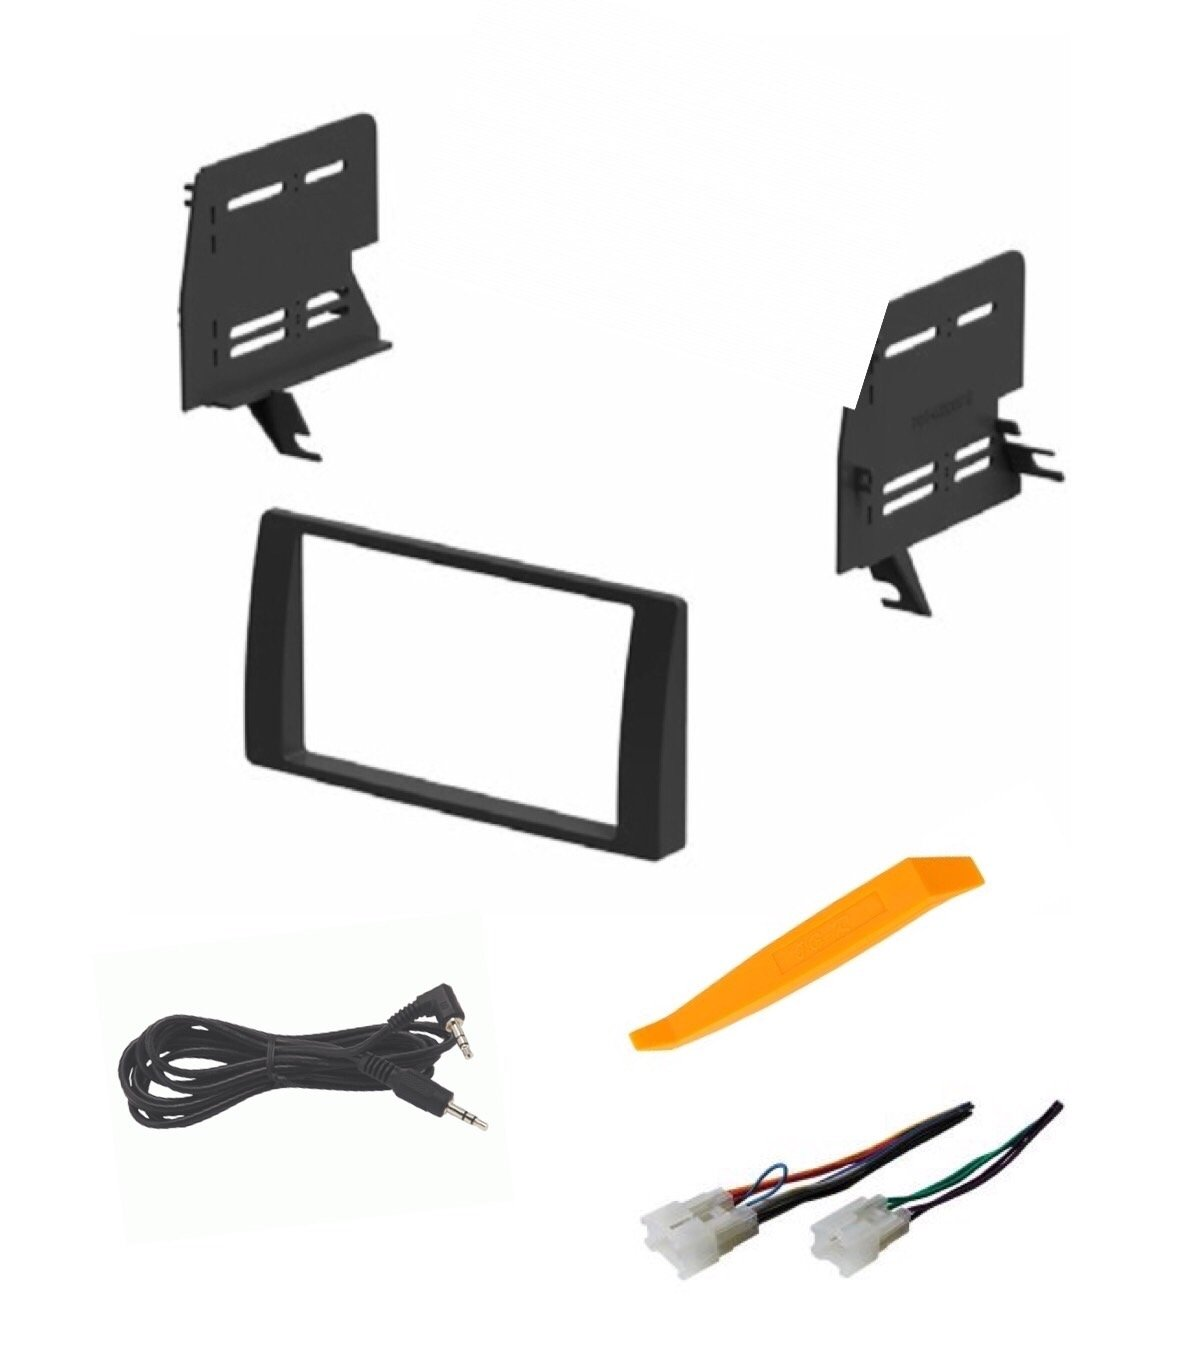 ASC Audio Car Stereo Dash Install Kit and Wire Harness for Installing an Aftermarket Double Din Radio for 2002 2003 2004 2005 2006 Toyota Camry - No Factory Premium Amp - No Factory NAV